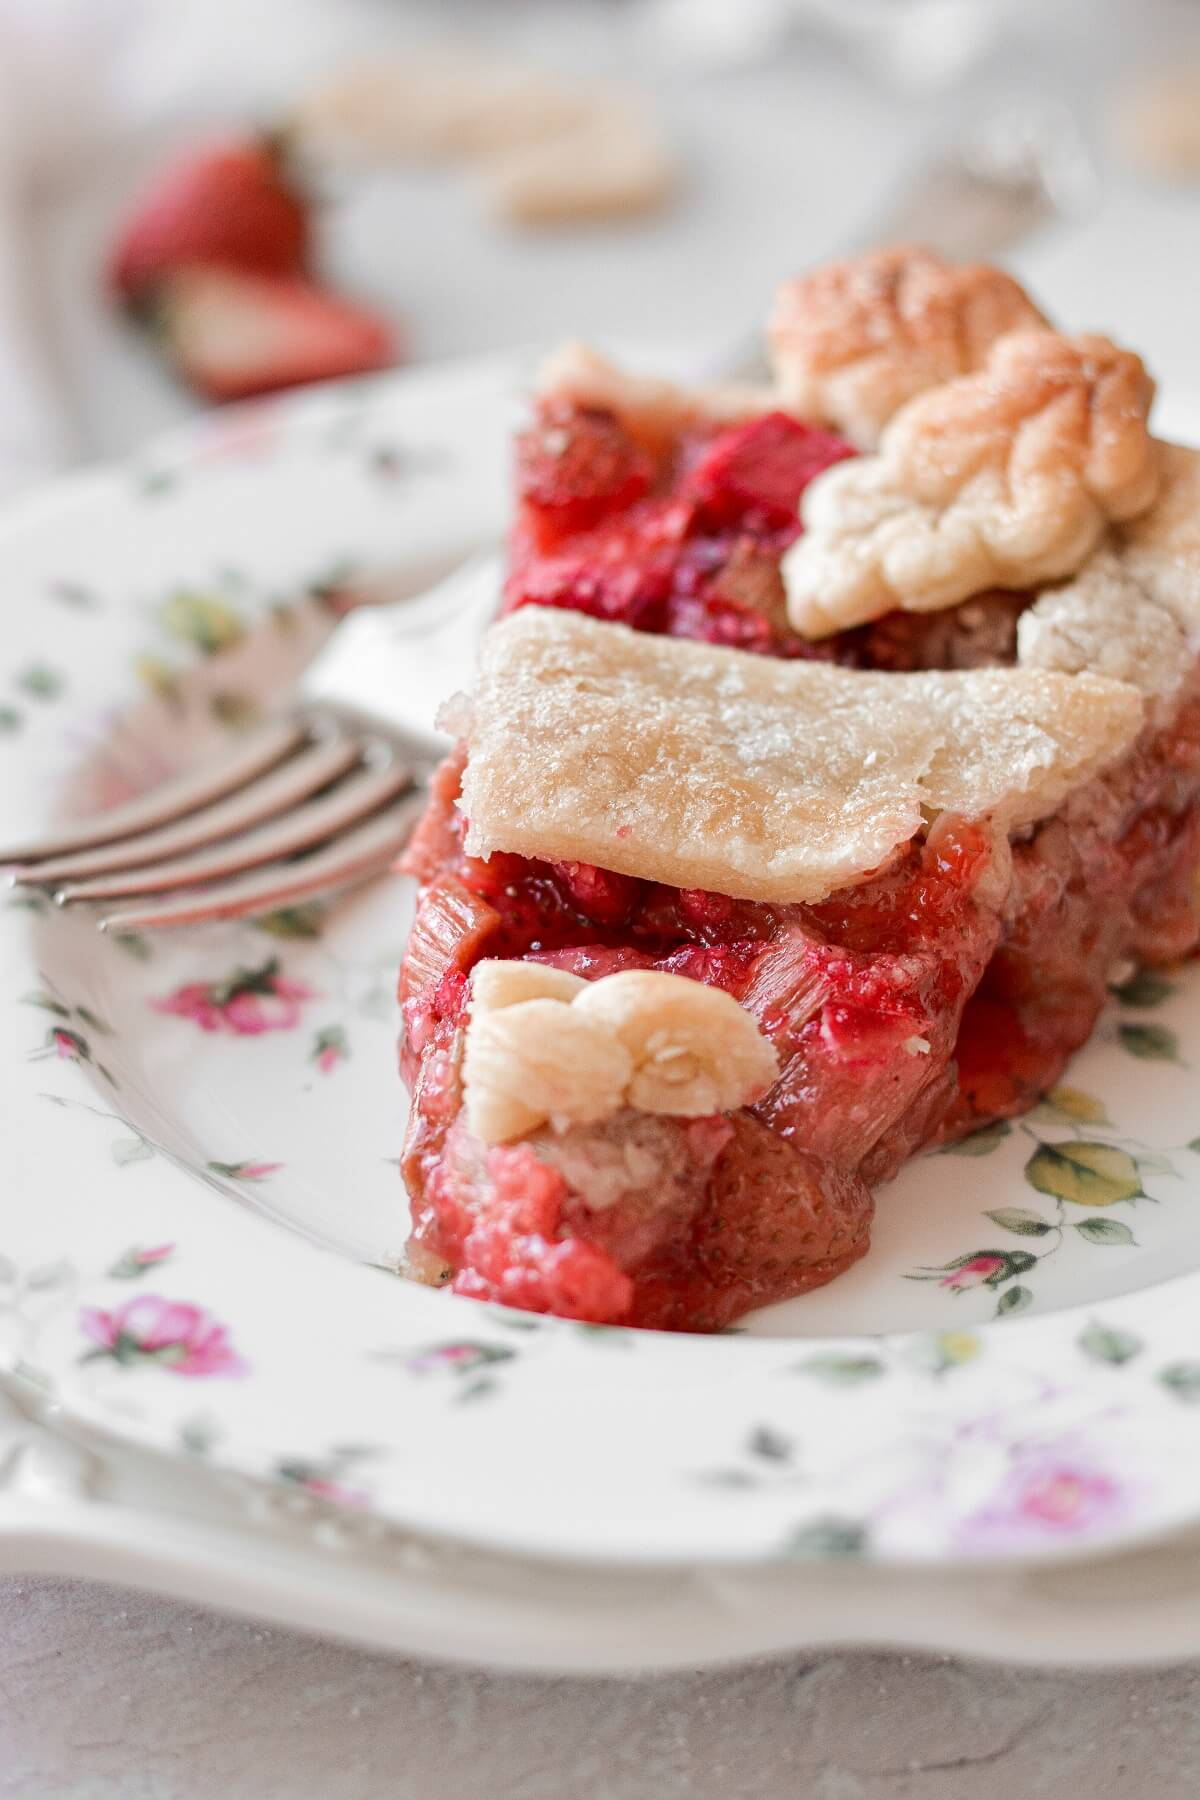 A slice of strawberry rhubarb pie, on a flowered plate.